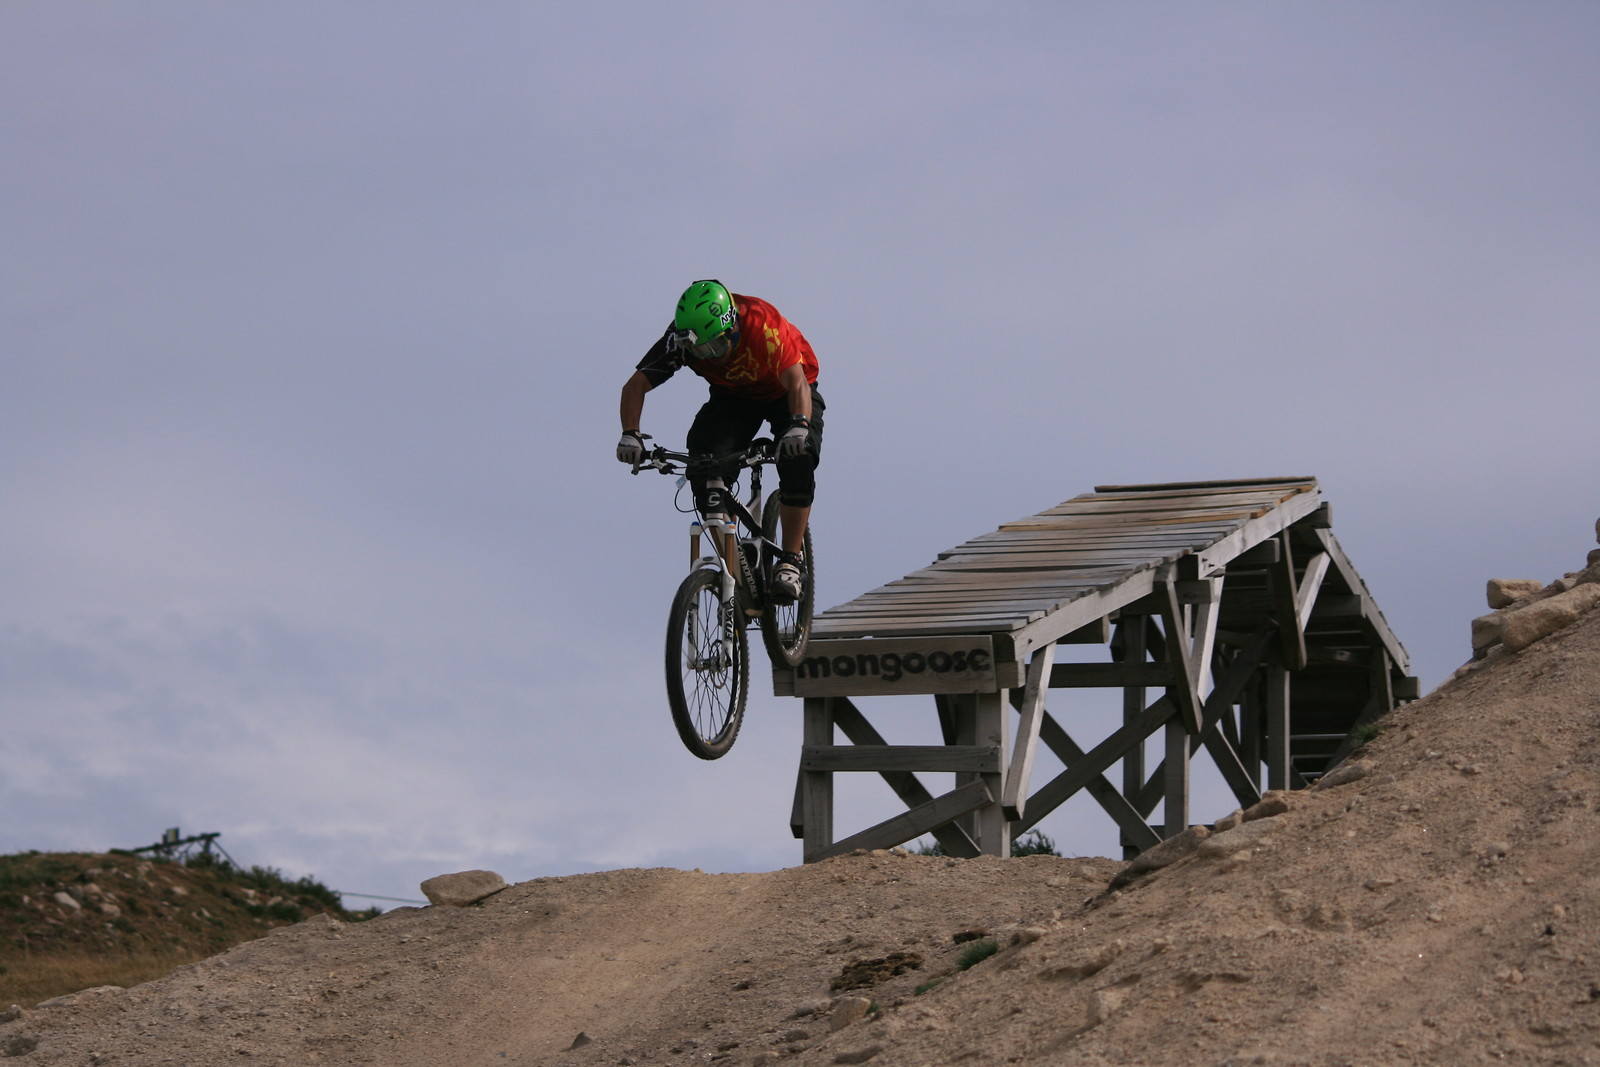 IMG 5224 - David_Braga - Mountain Biking Pictures - Vital MTB